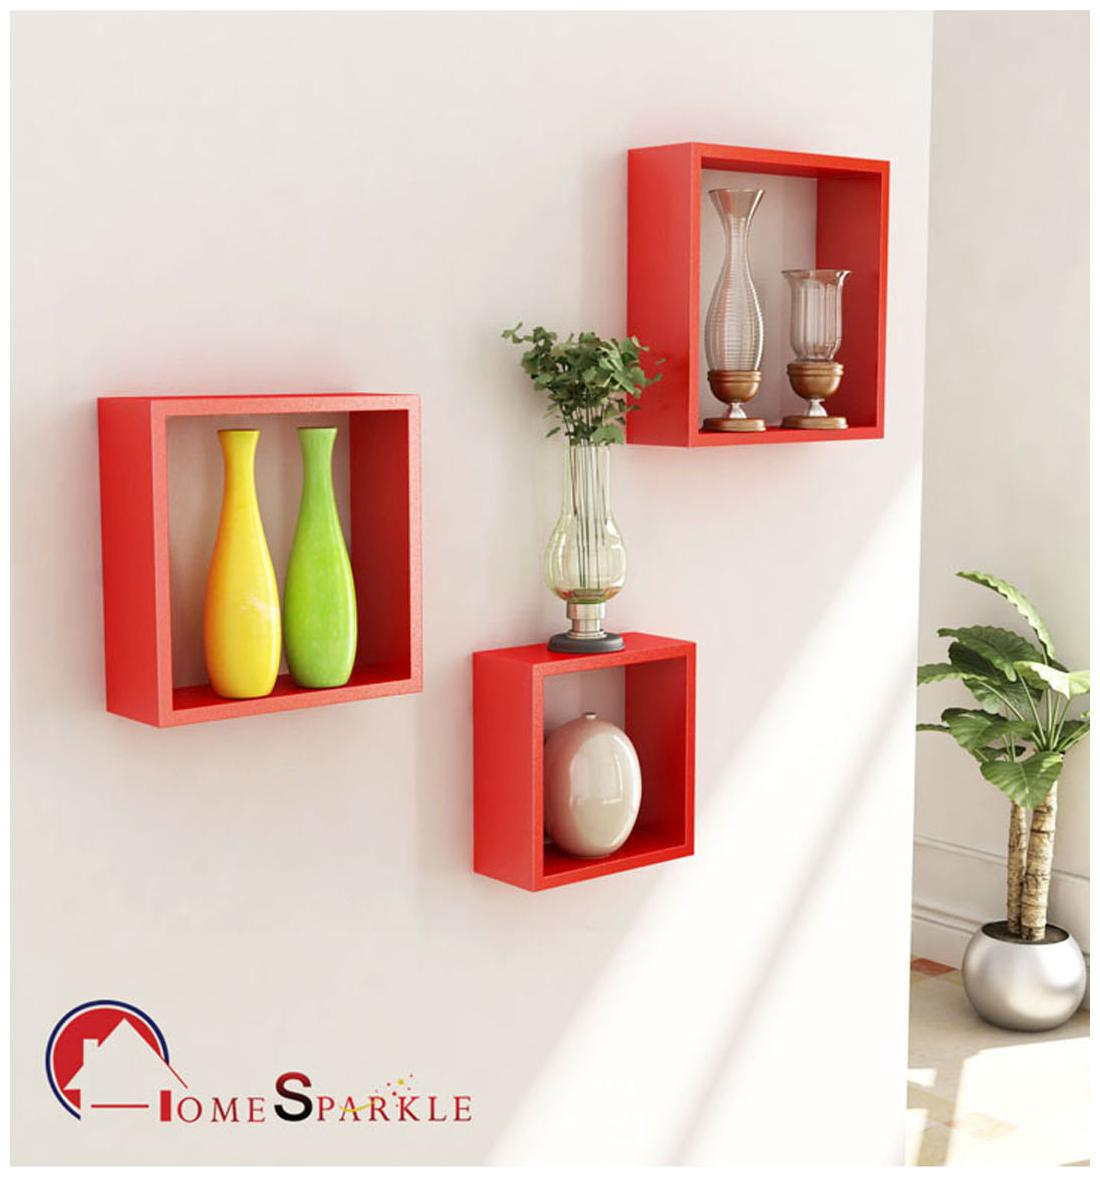 Home Sparkle Wooden Cube Wall Shelves Set Of 3 by Home Sparkle